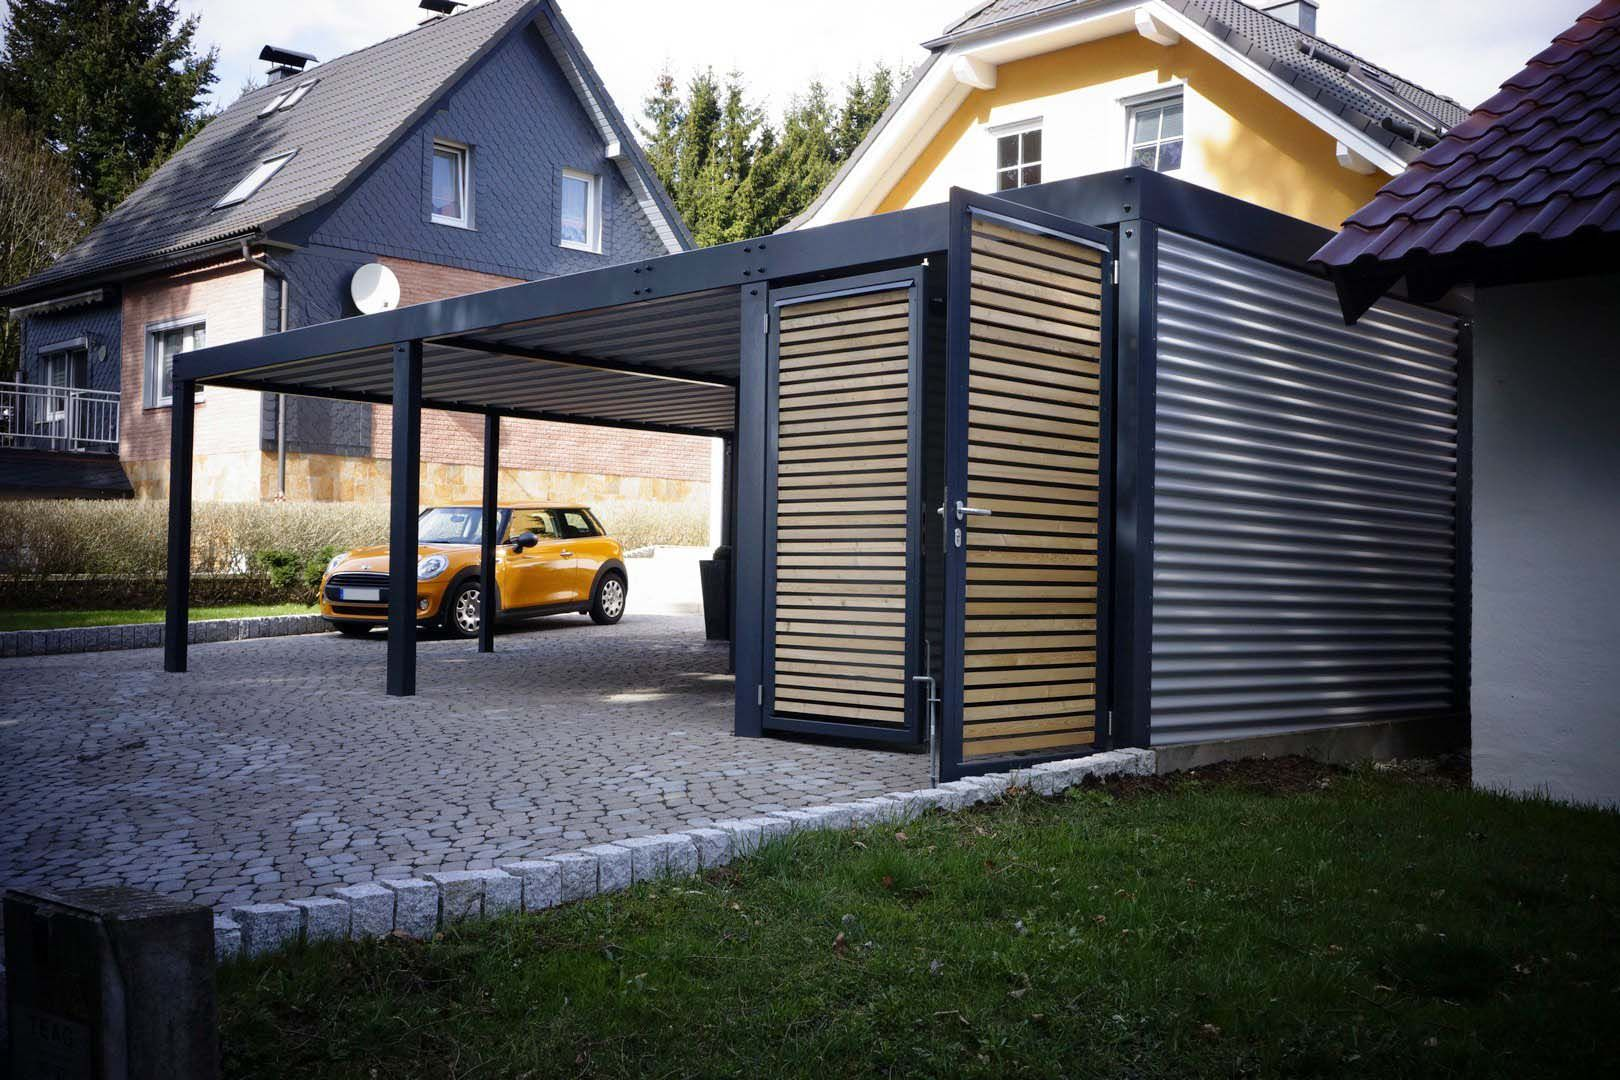 metallcarport stahlcarport kaufen metall carport preise mit abstellraum konfigurator design wien. Black Bedroom Furniture Sets. Home Design Ideas